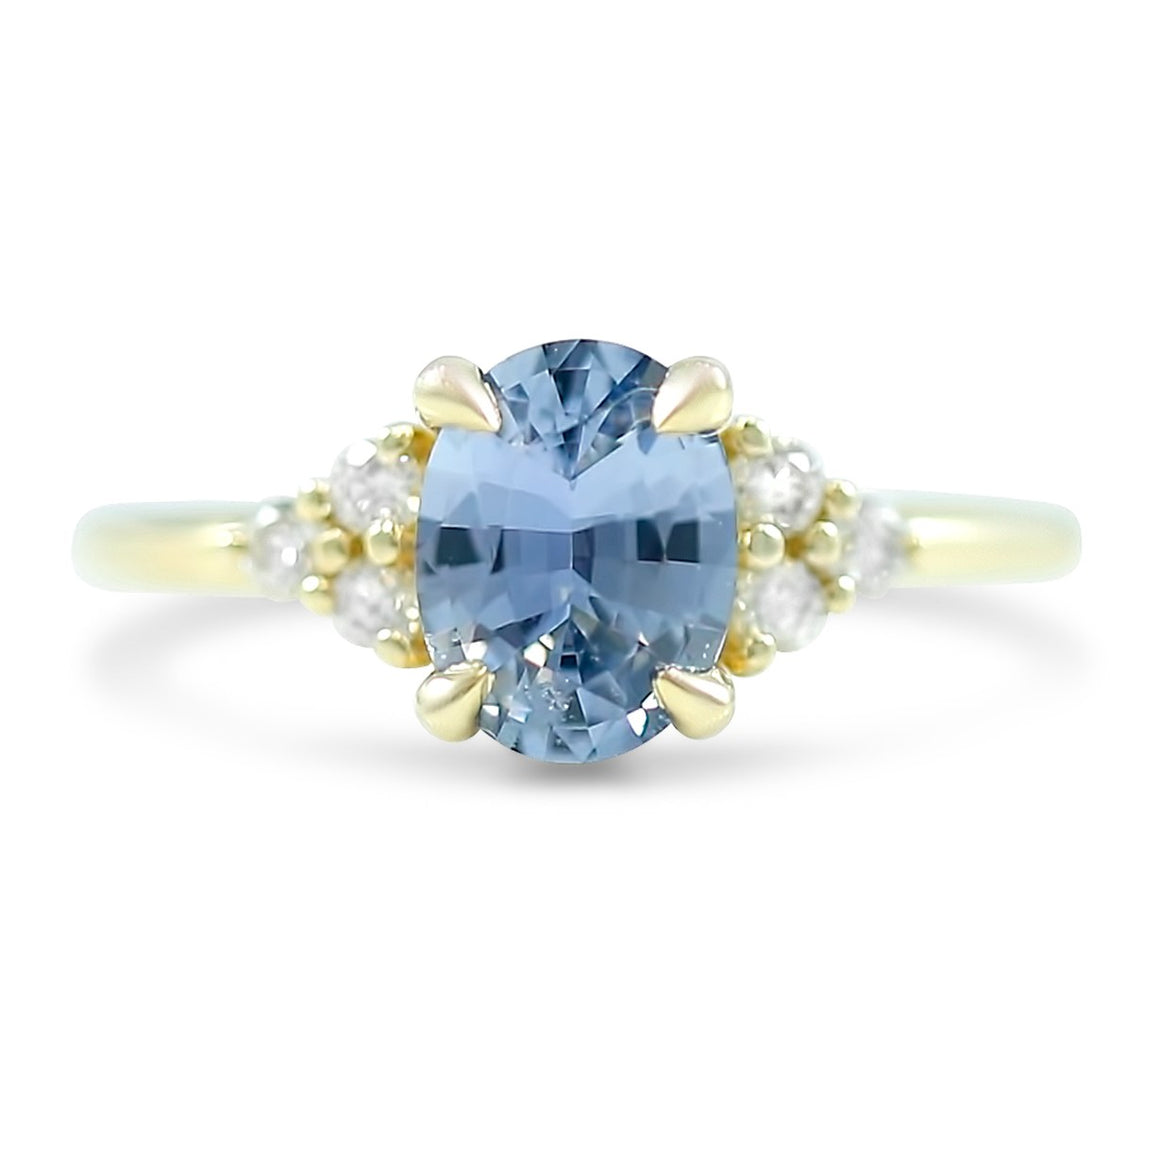 1.31ct light blue oval sapphire engagement ring with clusters of white diamonds on each side of center stone in 14k yellow gold